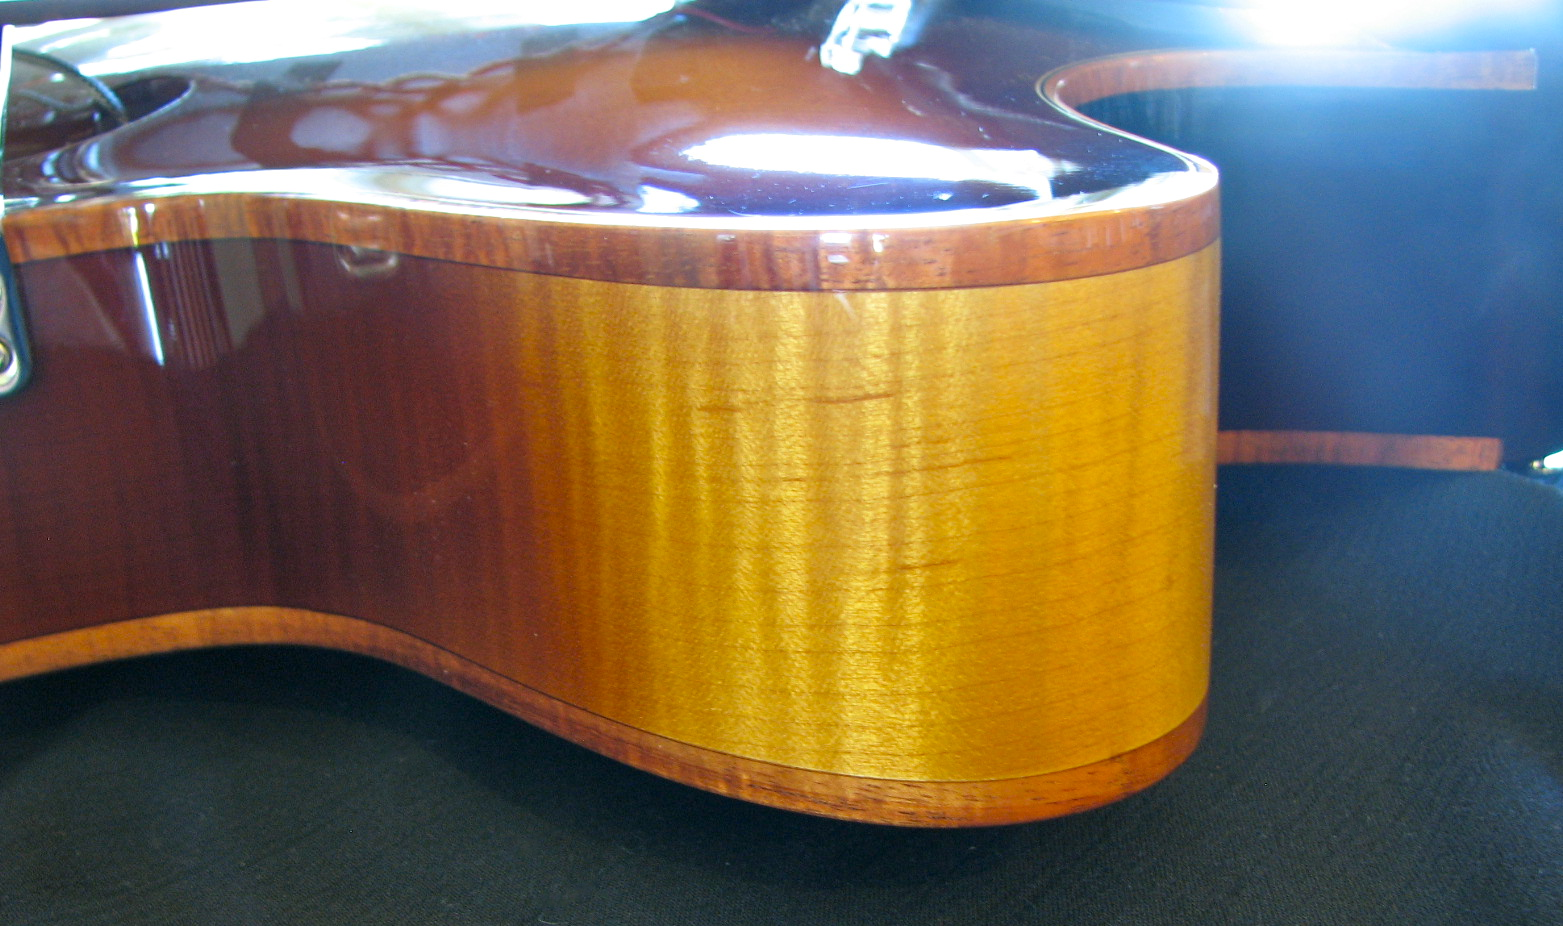 The cutaway horn of CB's maple burst Corvette archtop.